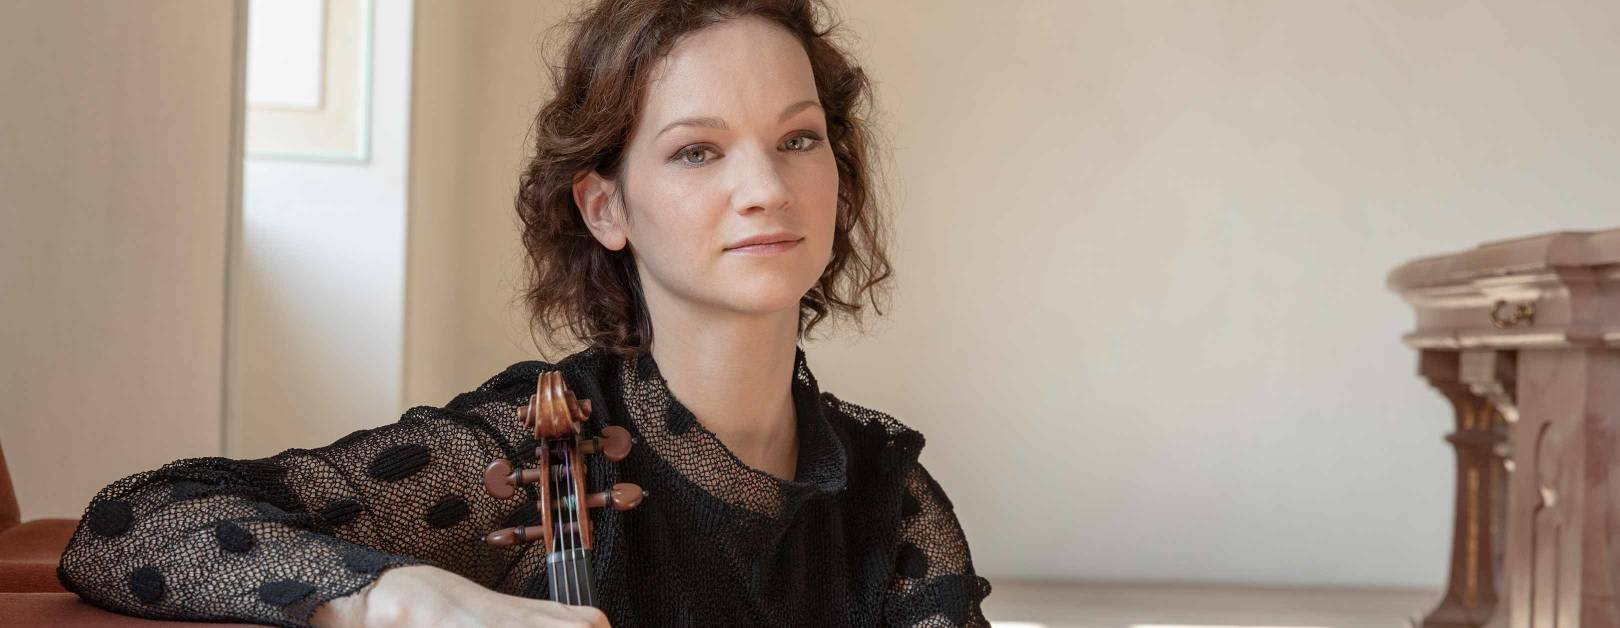 Hilary Hahn and Beethoven's Pastoral Symphony